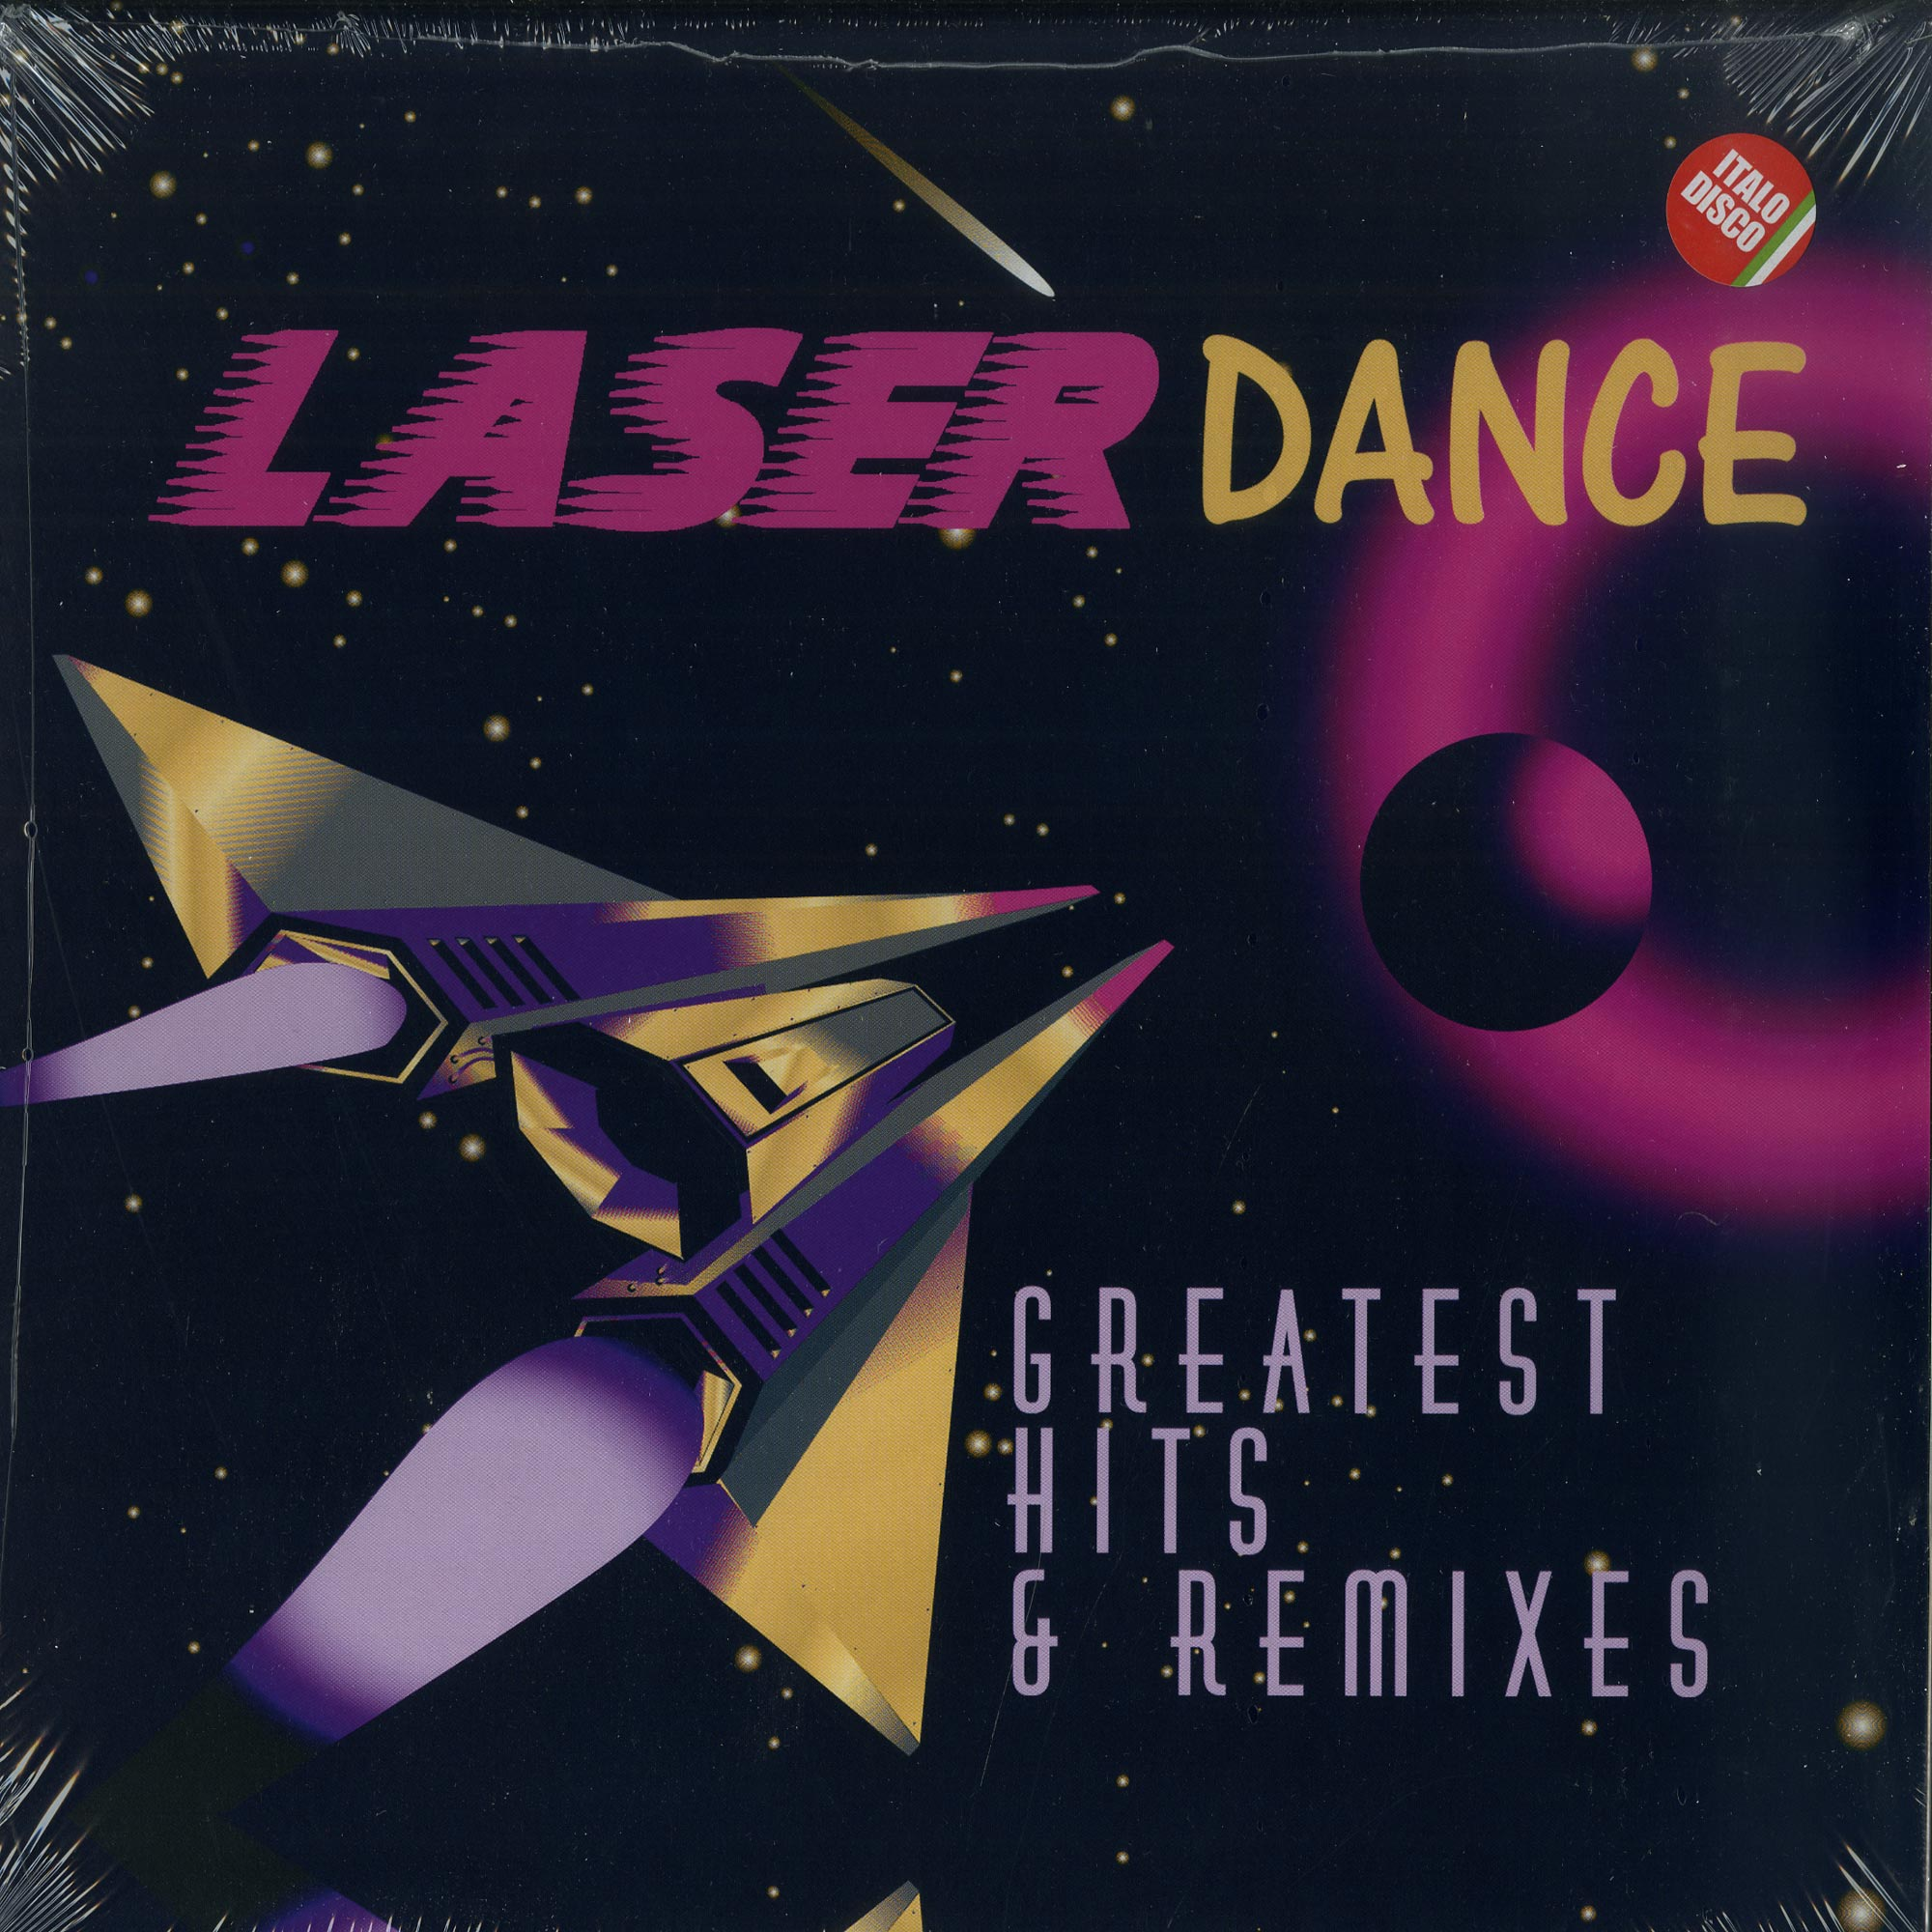 Laserdance - GREATEST HITS & REMIXES